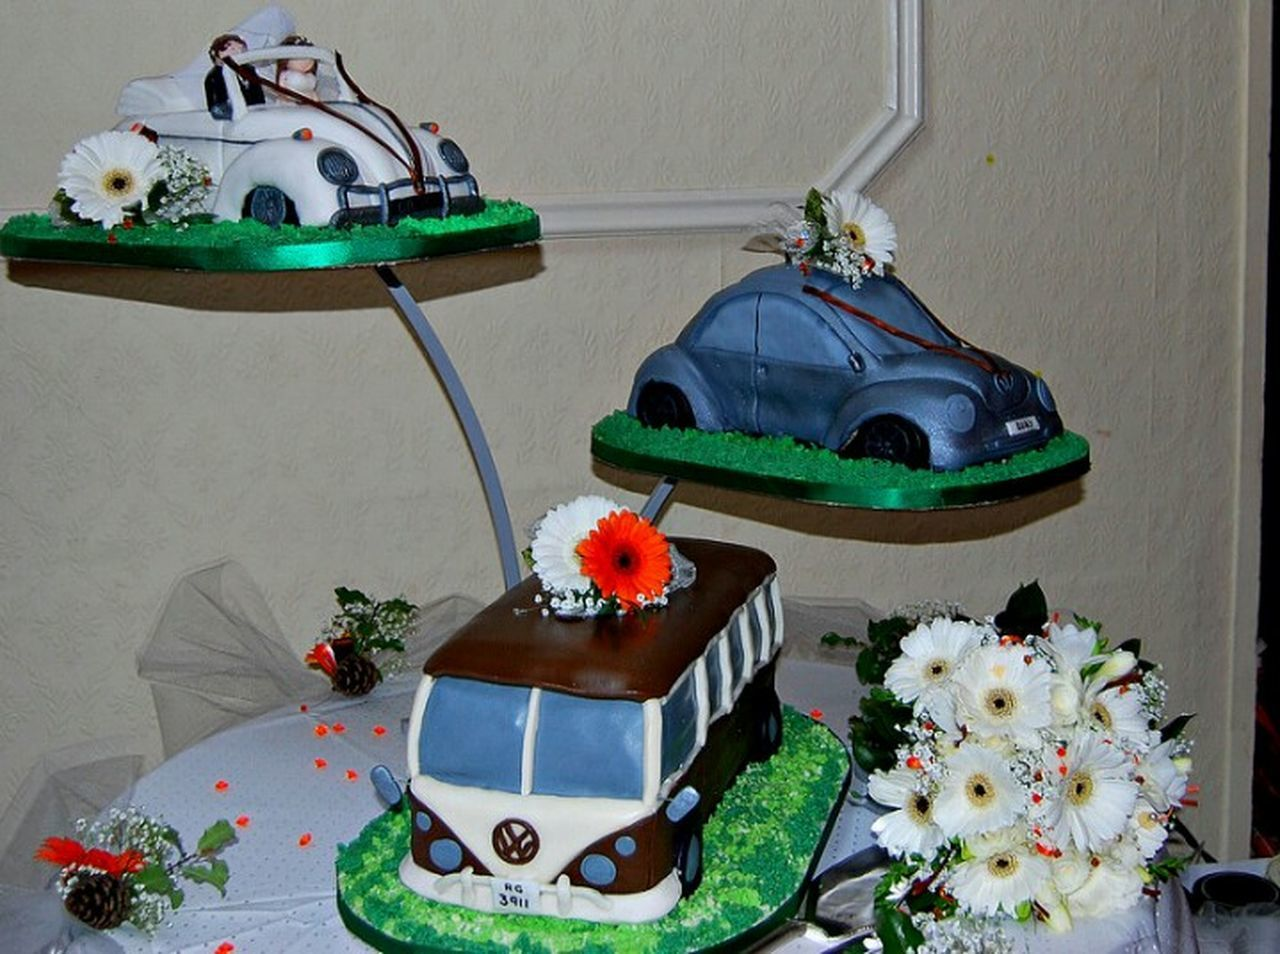 Vw Wedding Cake car wedding Indoors  Flower Table Christmas Decoration No People Celebration Christmas Plant Christmas Ornament Home Interior Flower Arrangement Christmas Tree Close-up Day